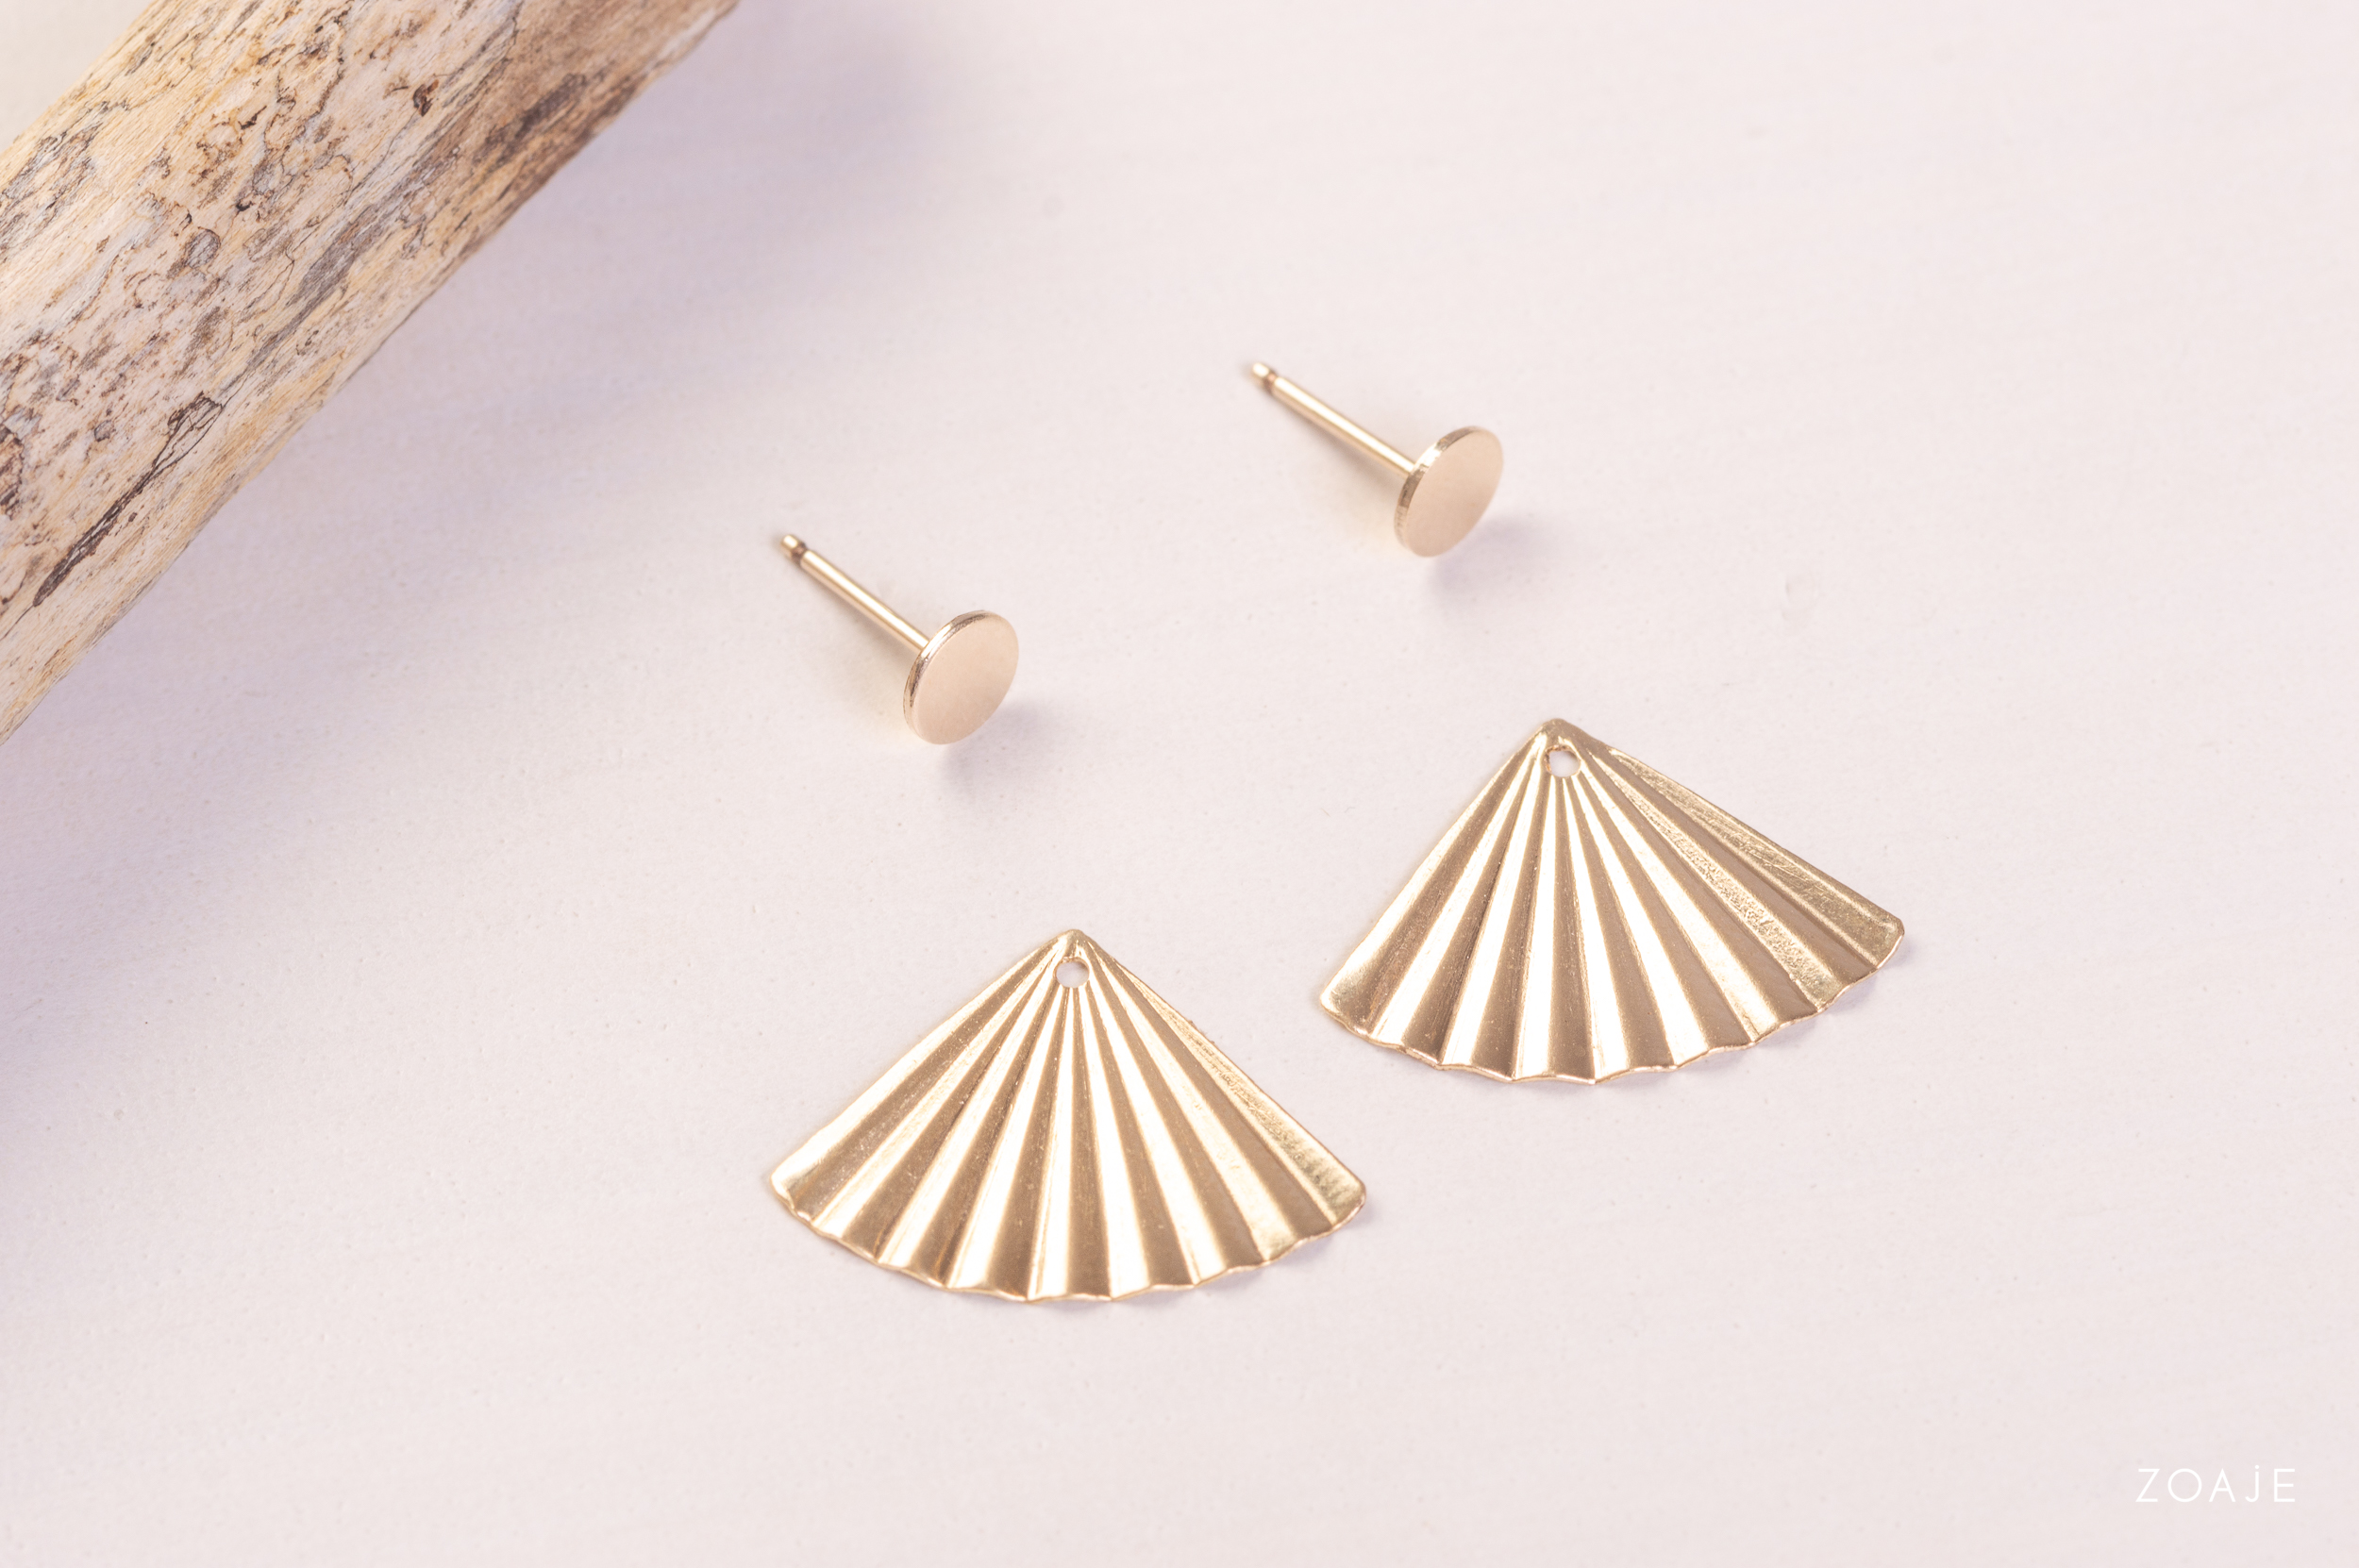 ZOAJE - SS18 WITHOUT MODEL-951.jpg